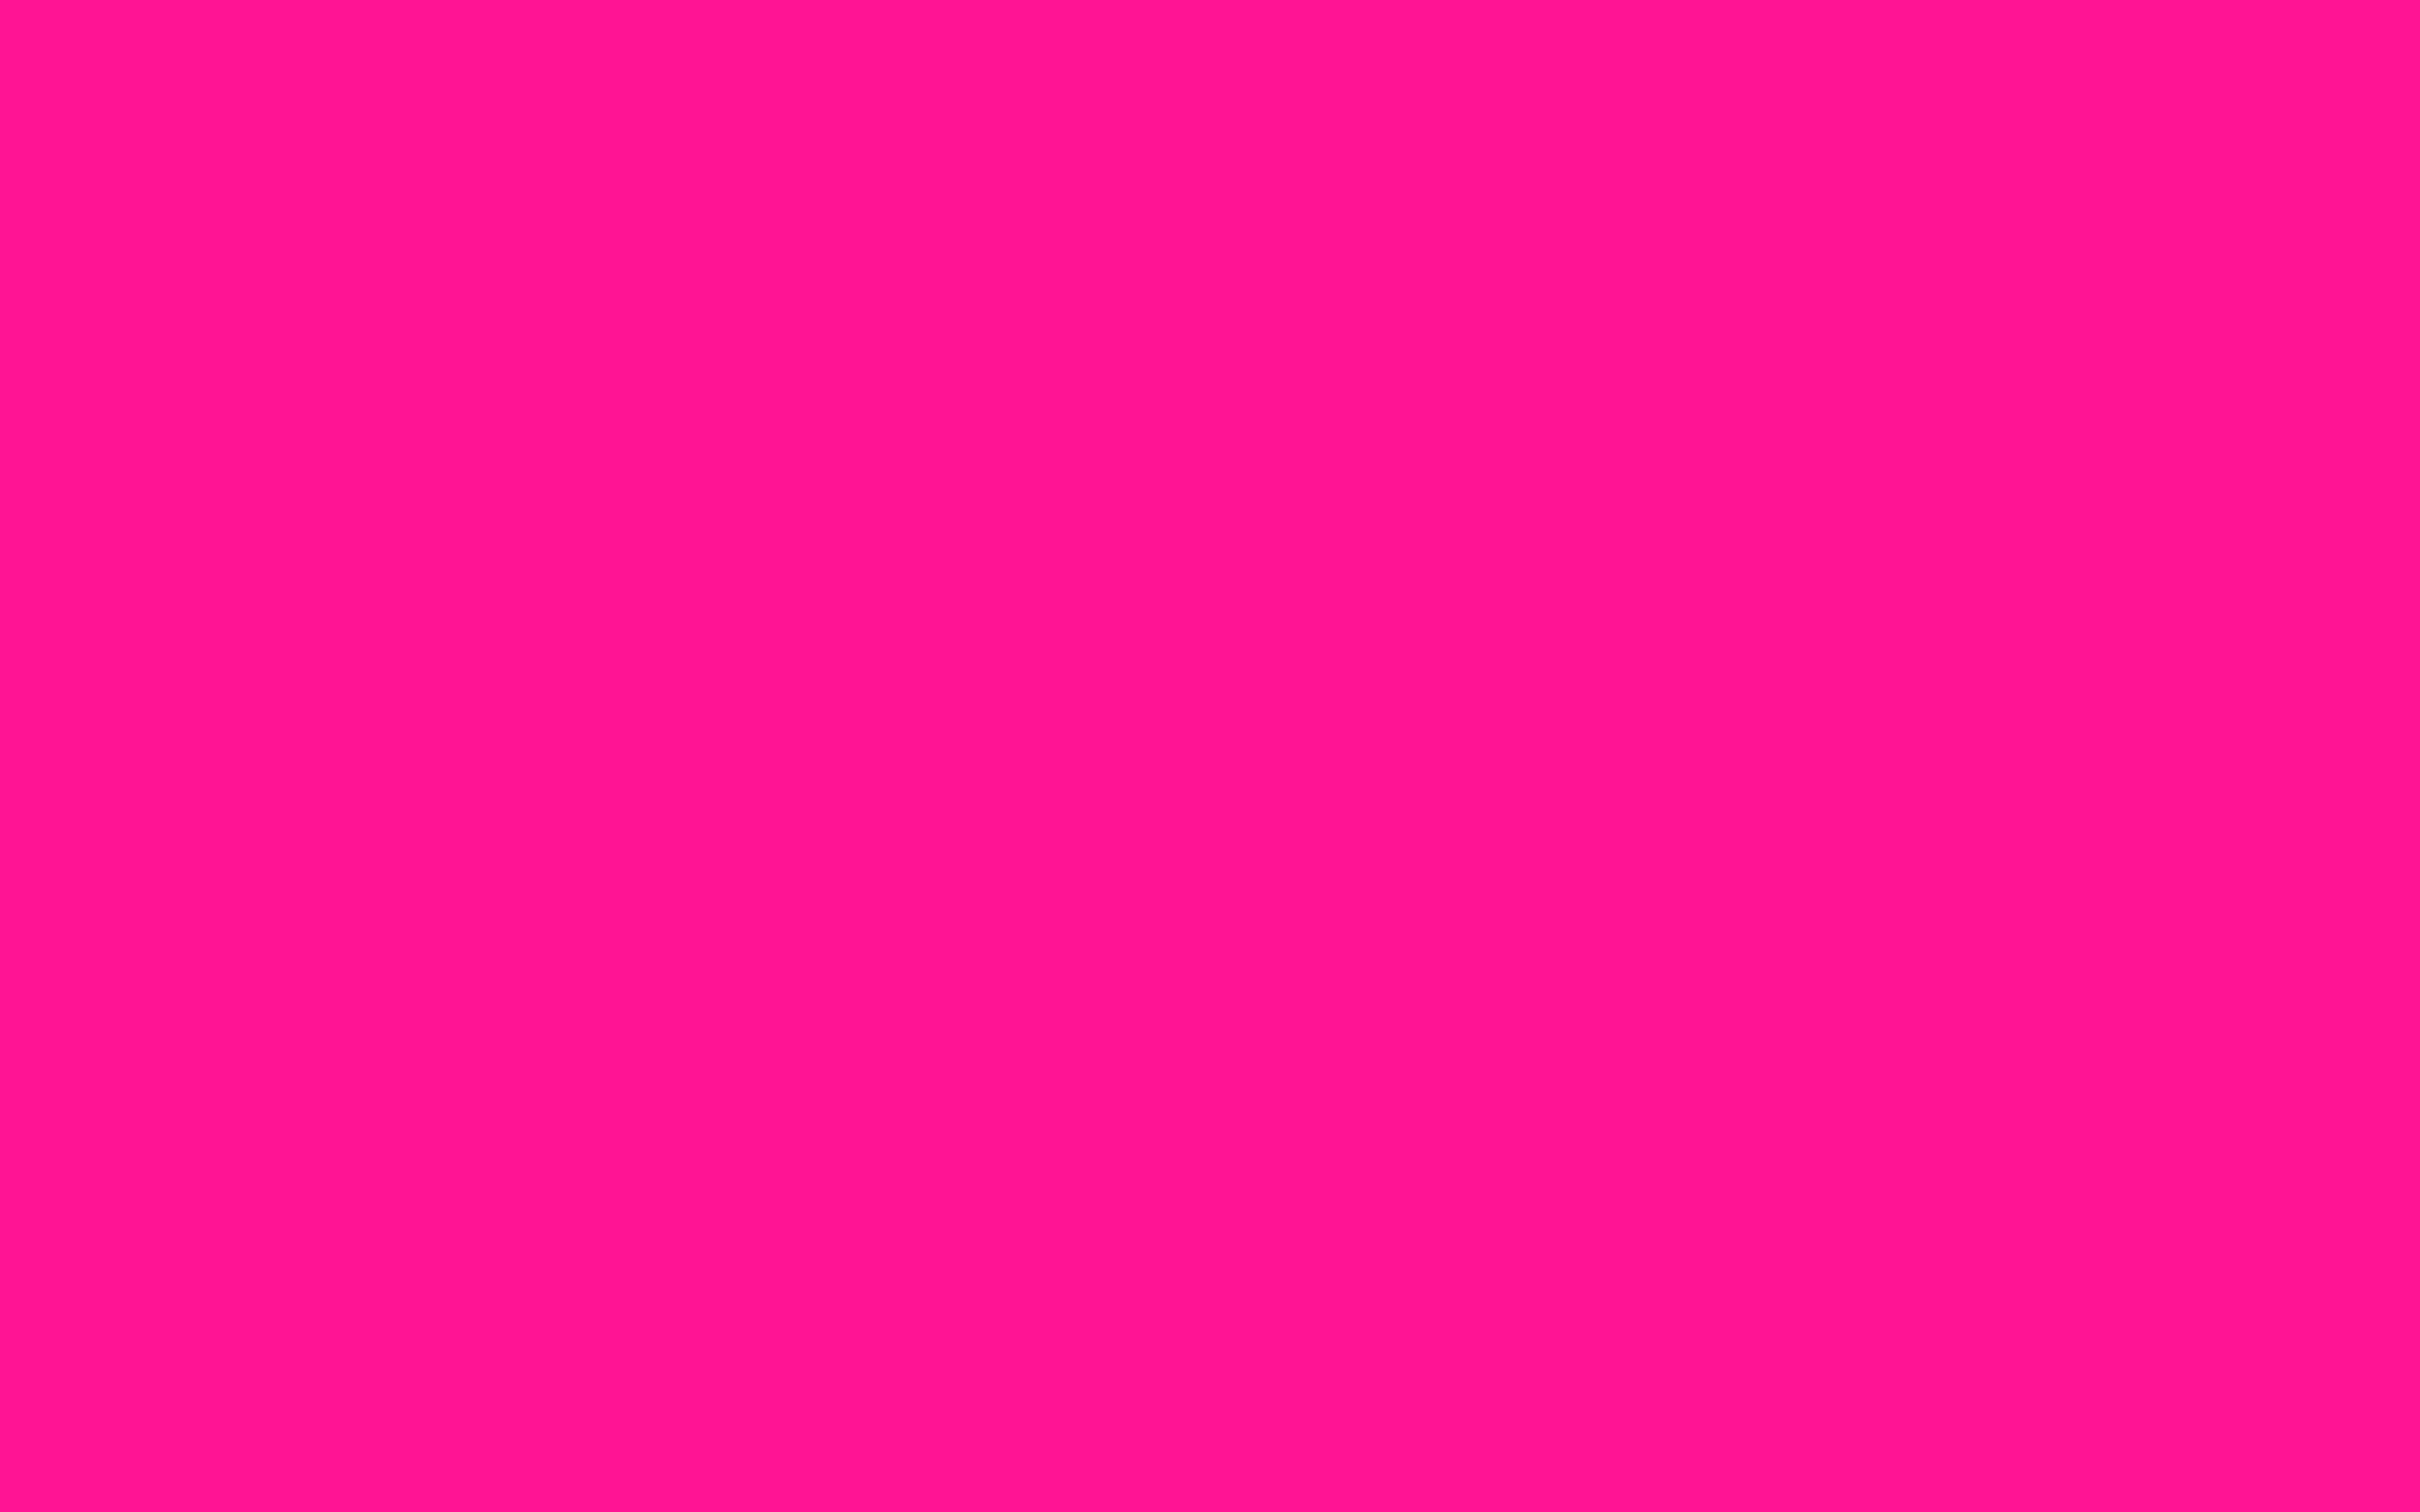 2560x1600 Fluorescent Pink Solid Color Background